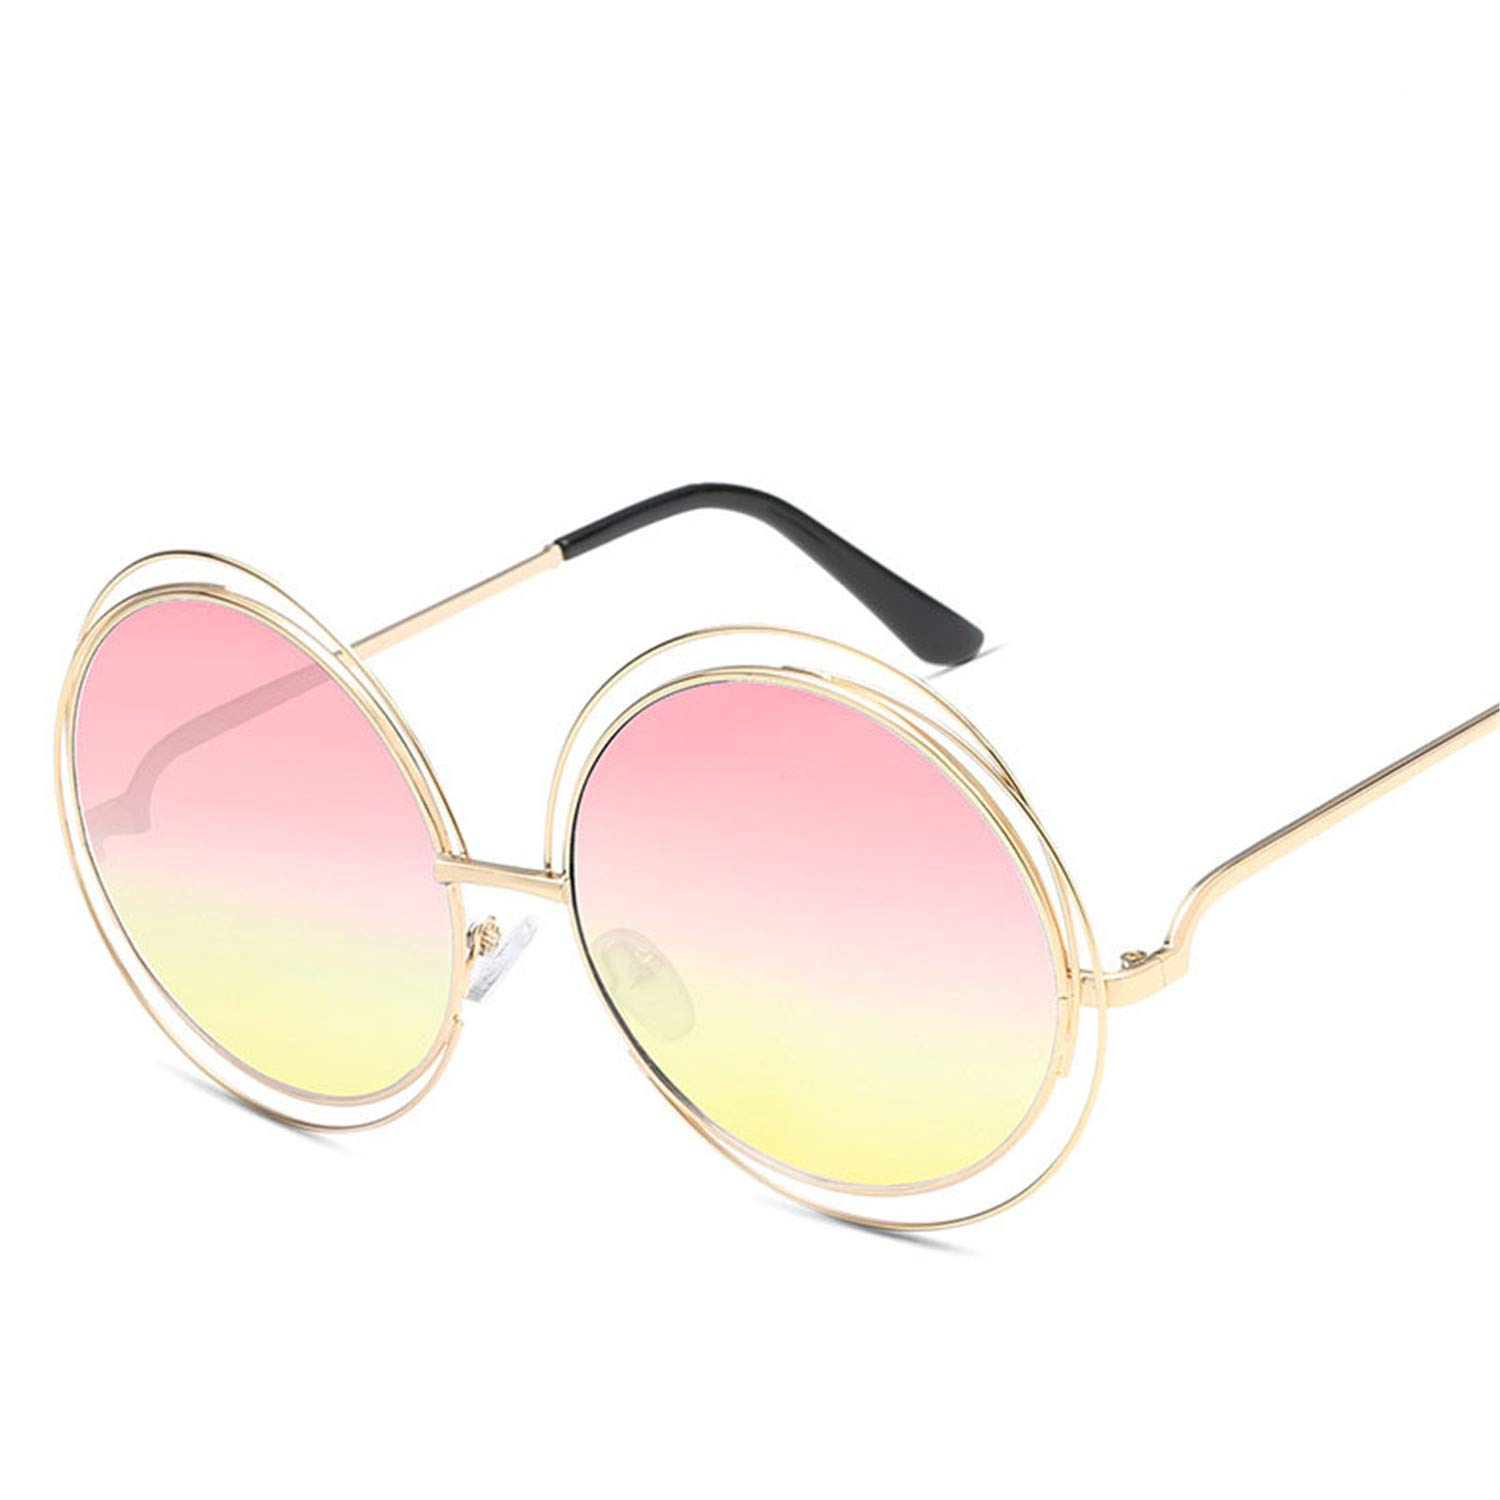 Amazon.com: Luxury Brand Round Womens Sunglasses Fashion ...